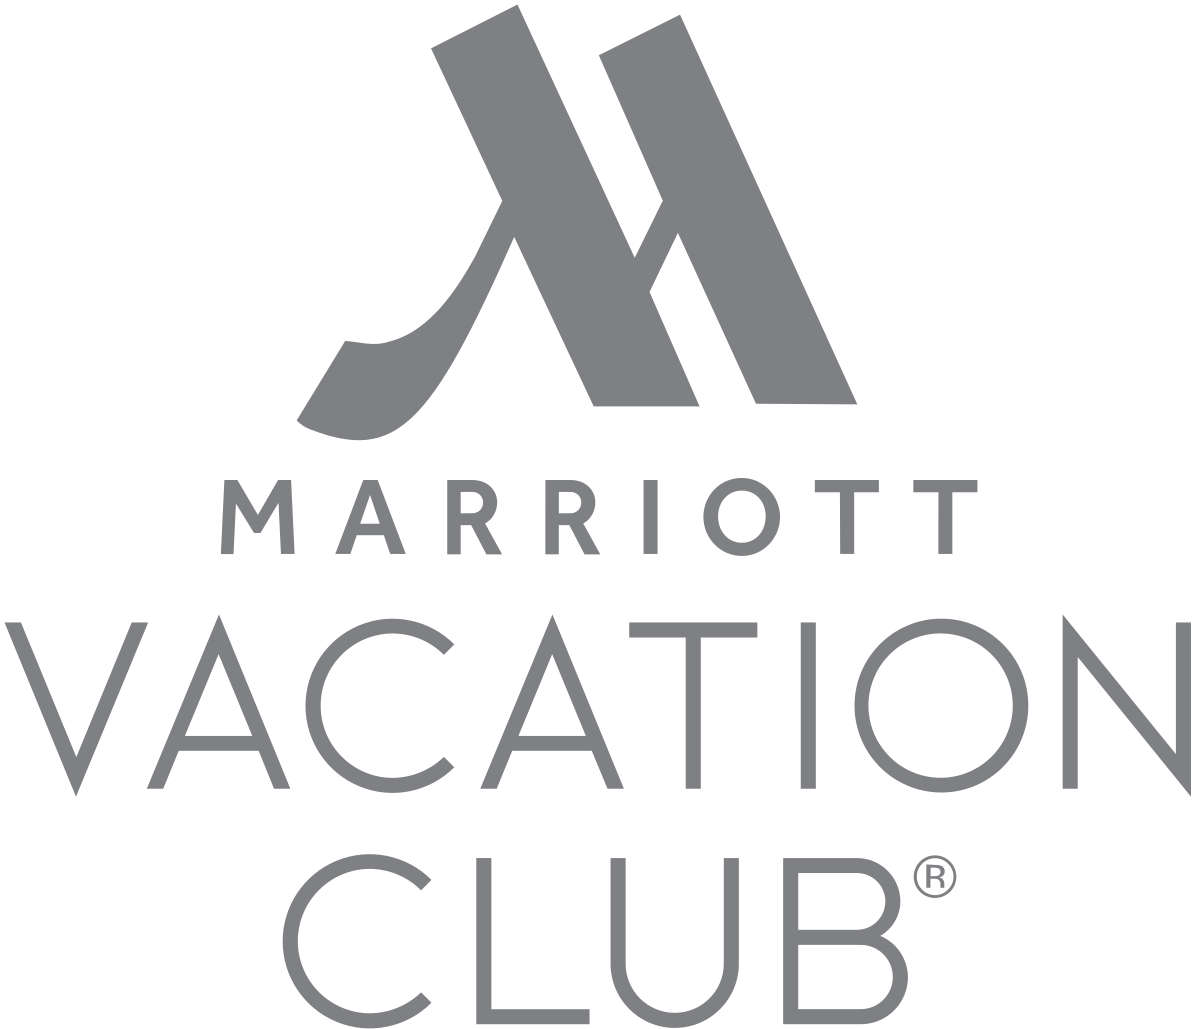 MarriottVacationClub Logo.png